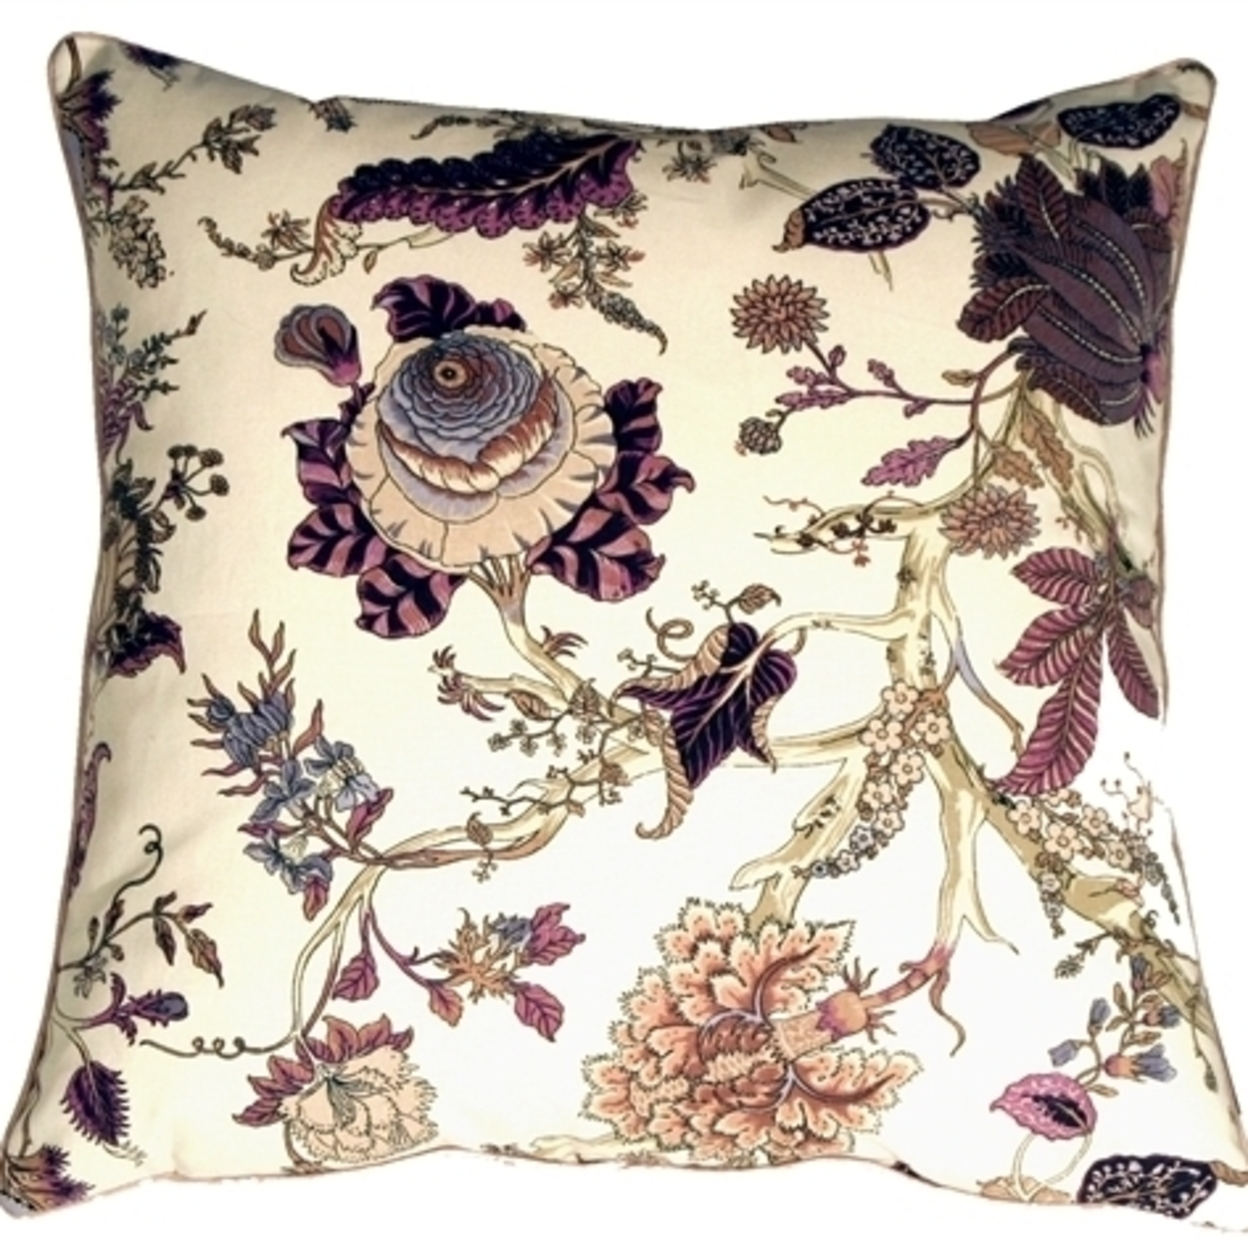 Pillow Decor Highland Floral Cream And Purple 20x20 Throw Pillow